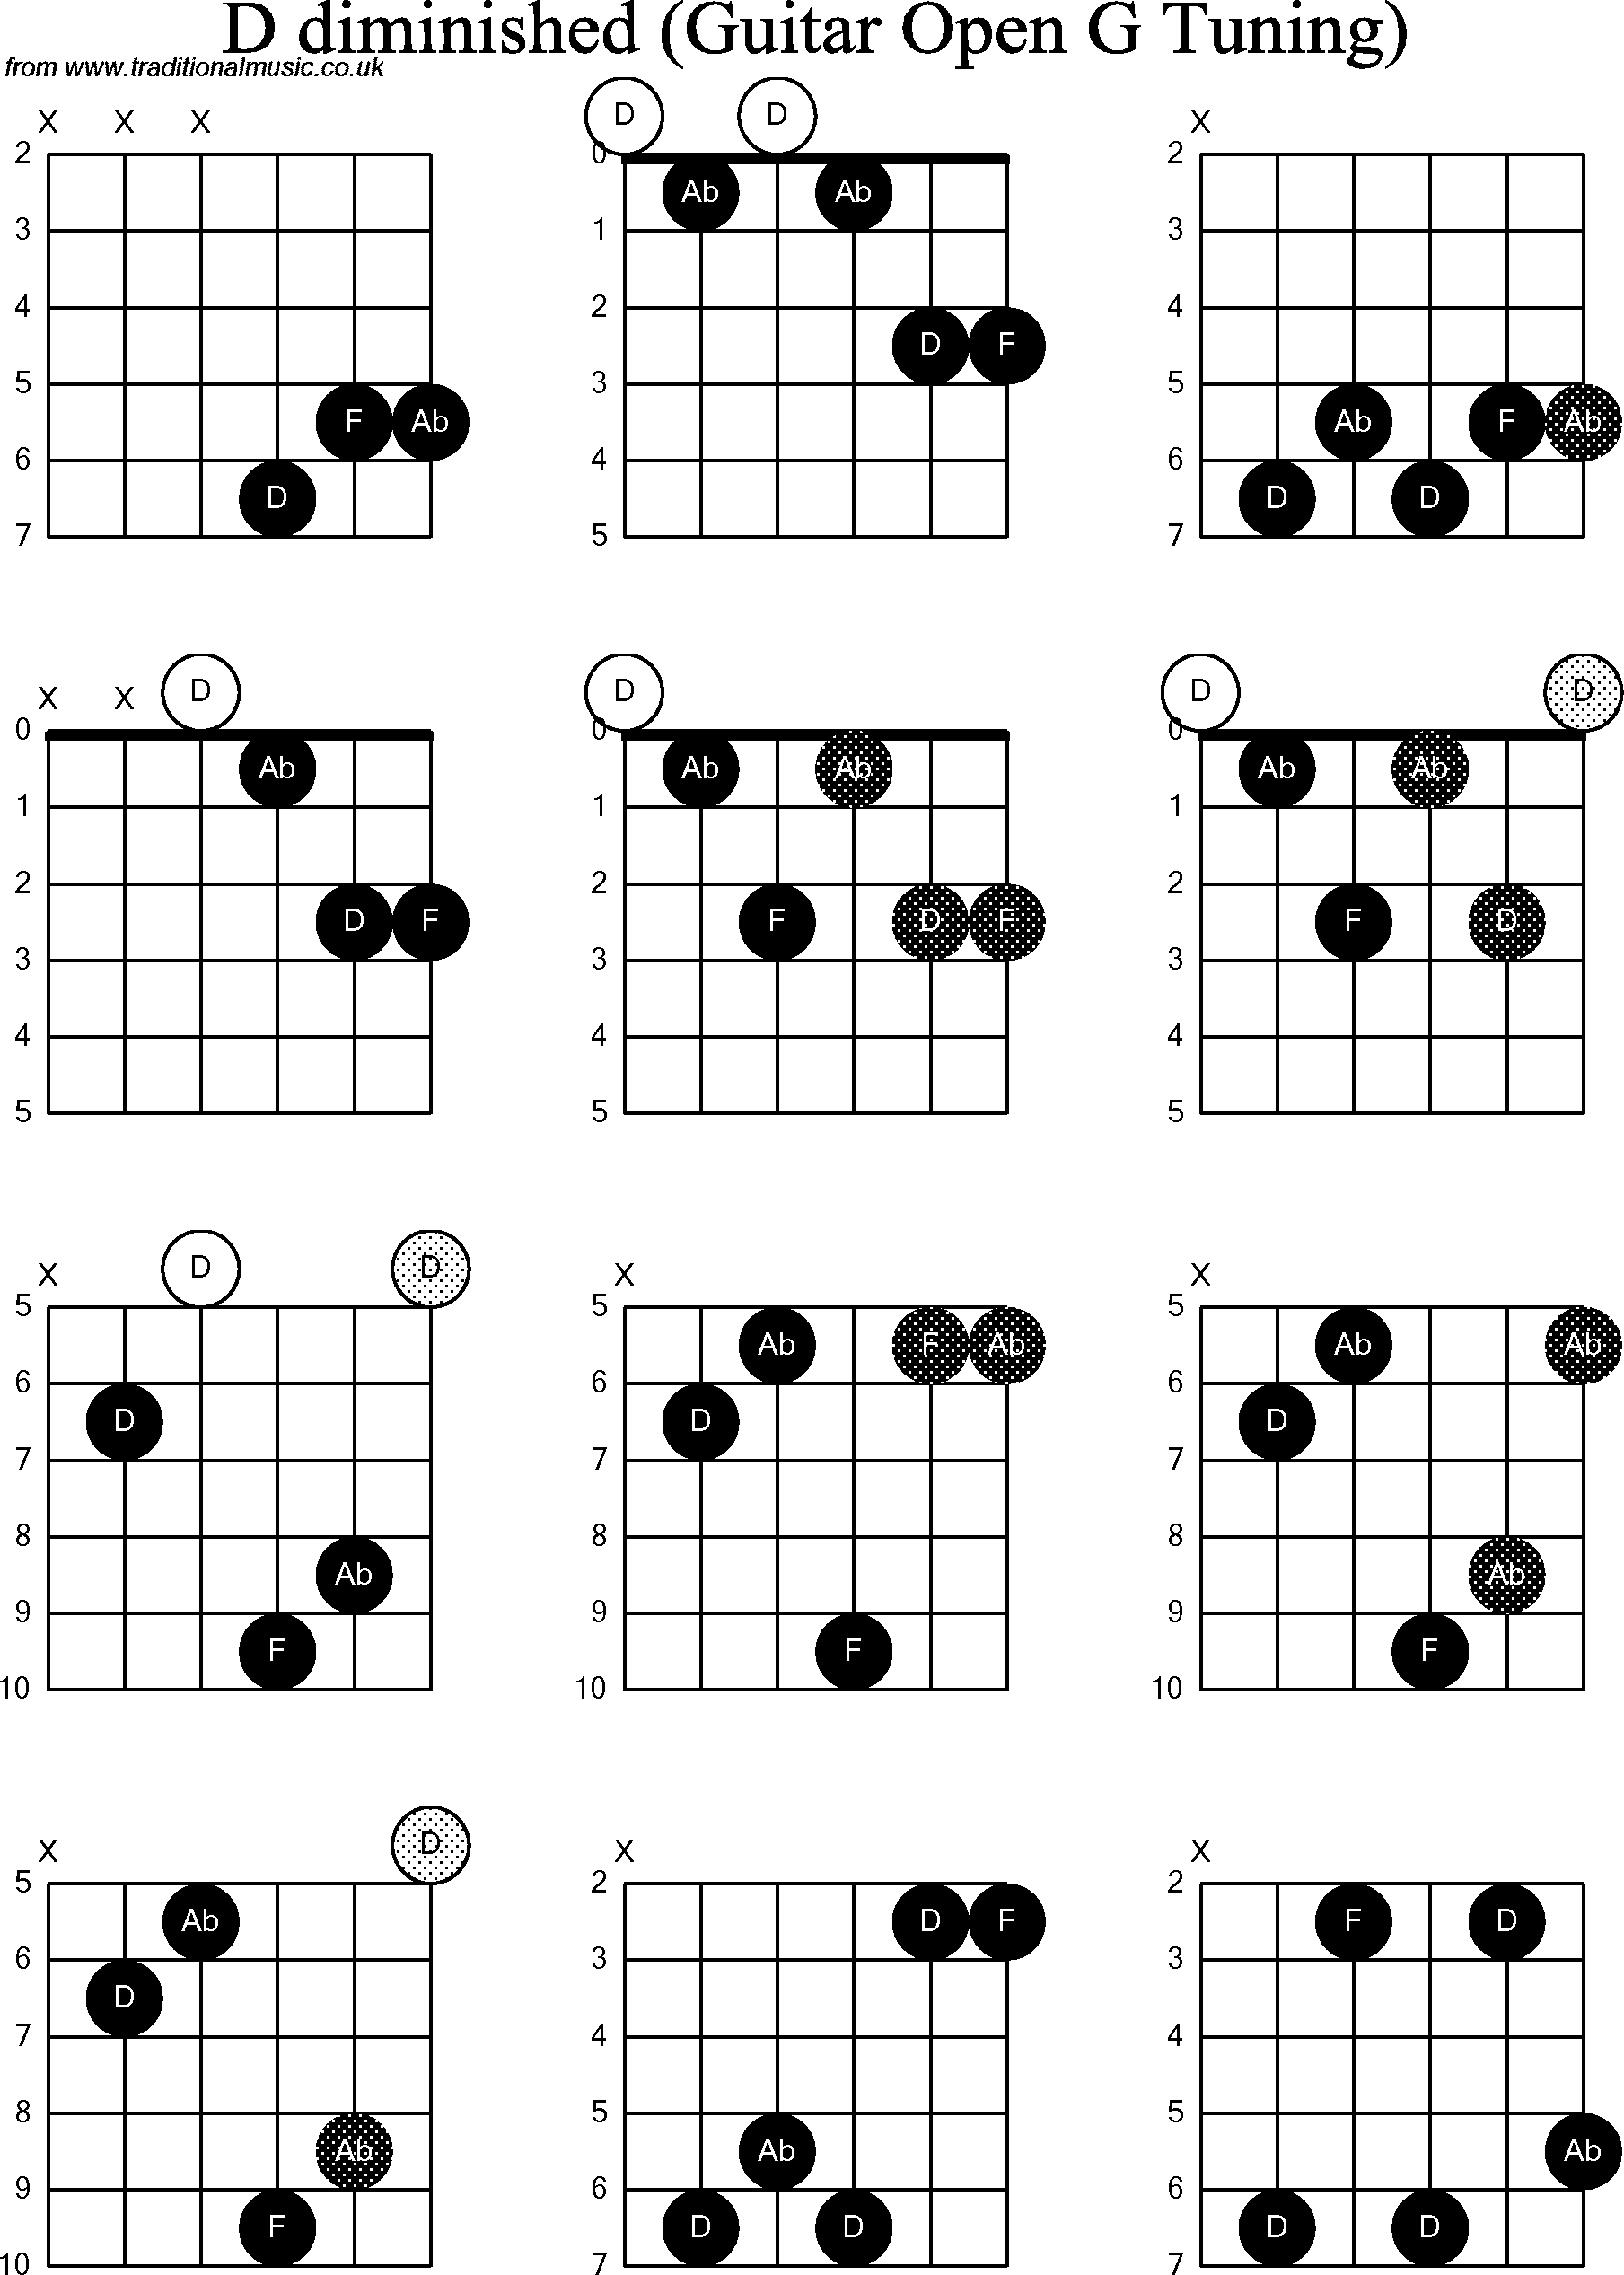 chord diagrams for  dobro d diminished